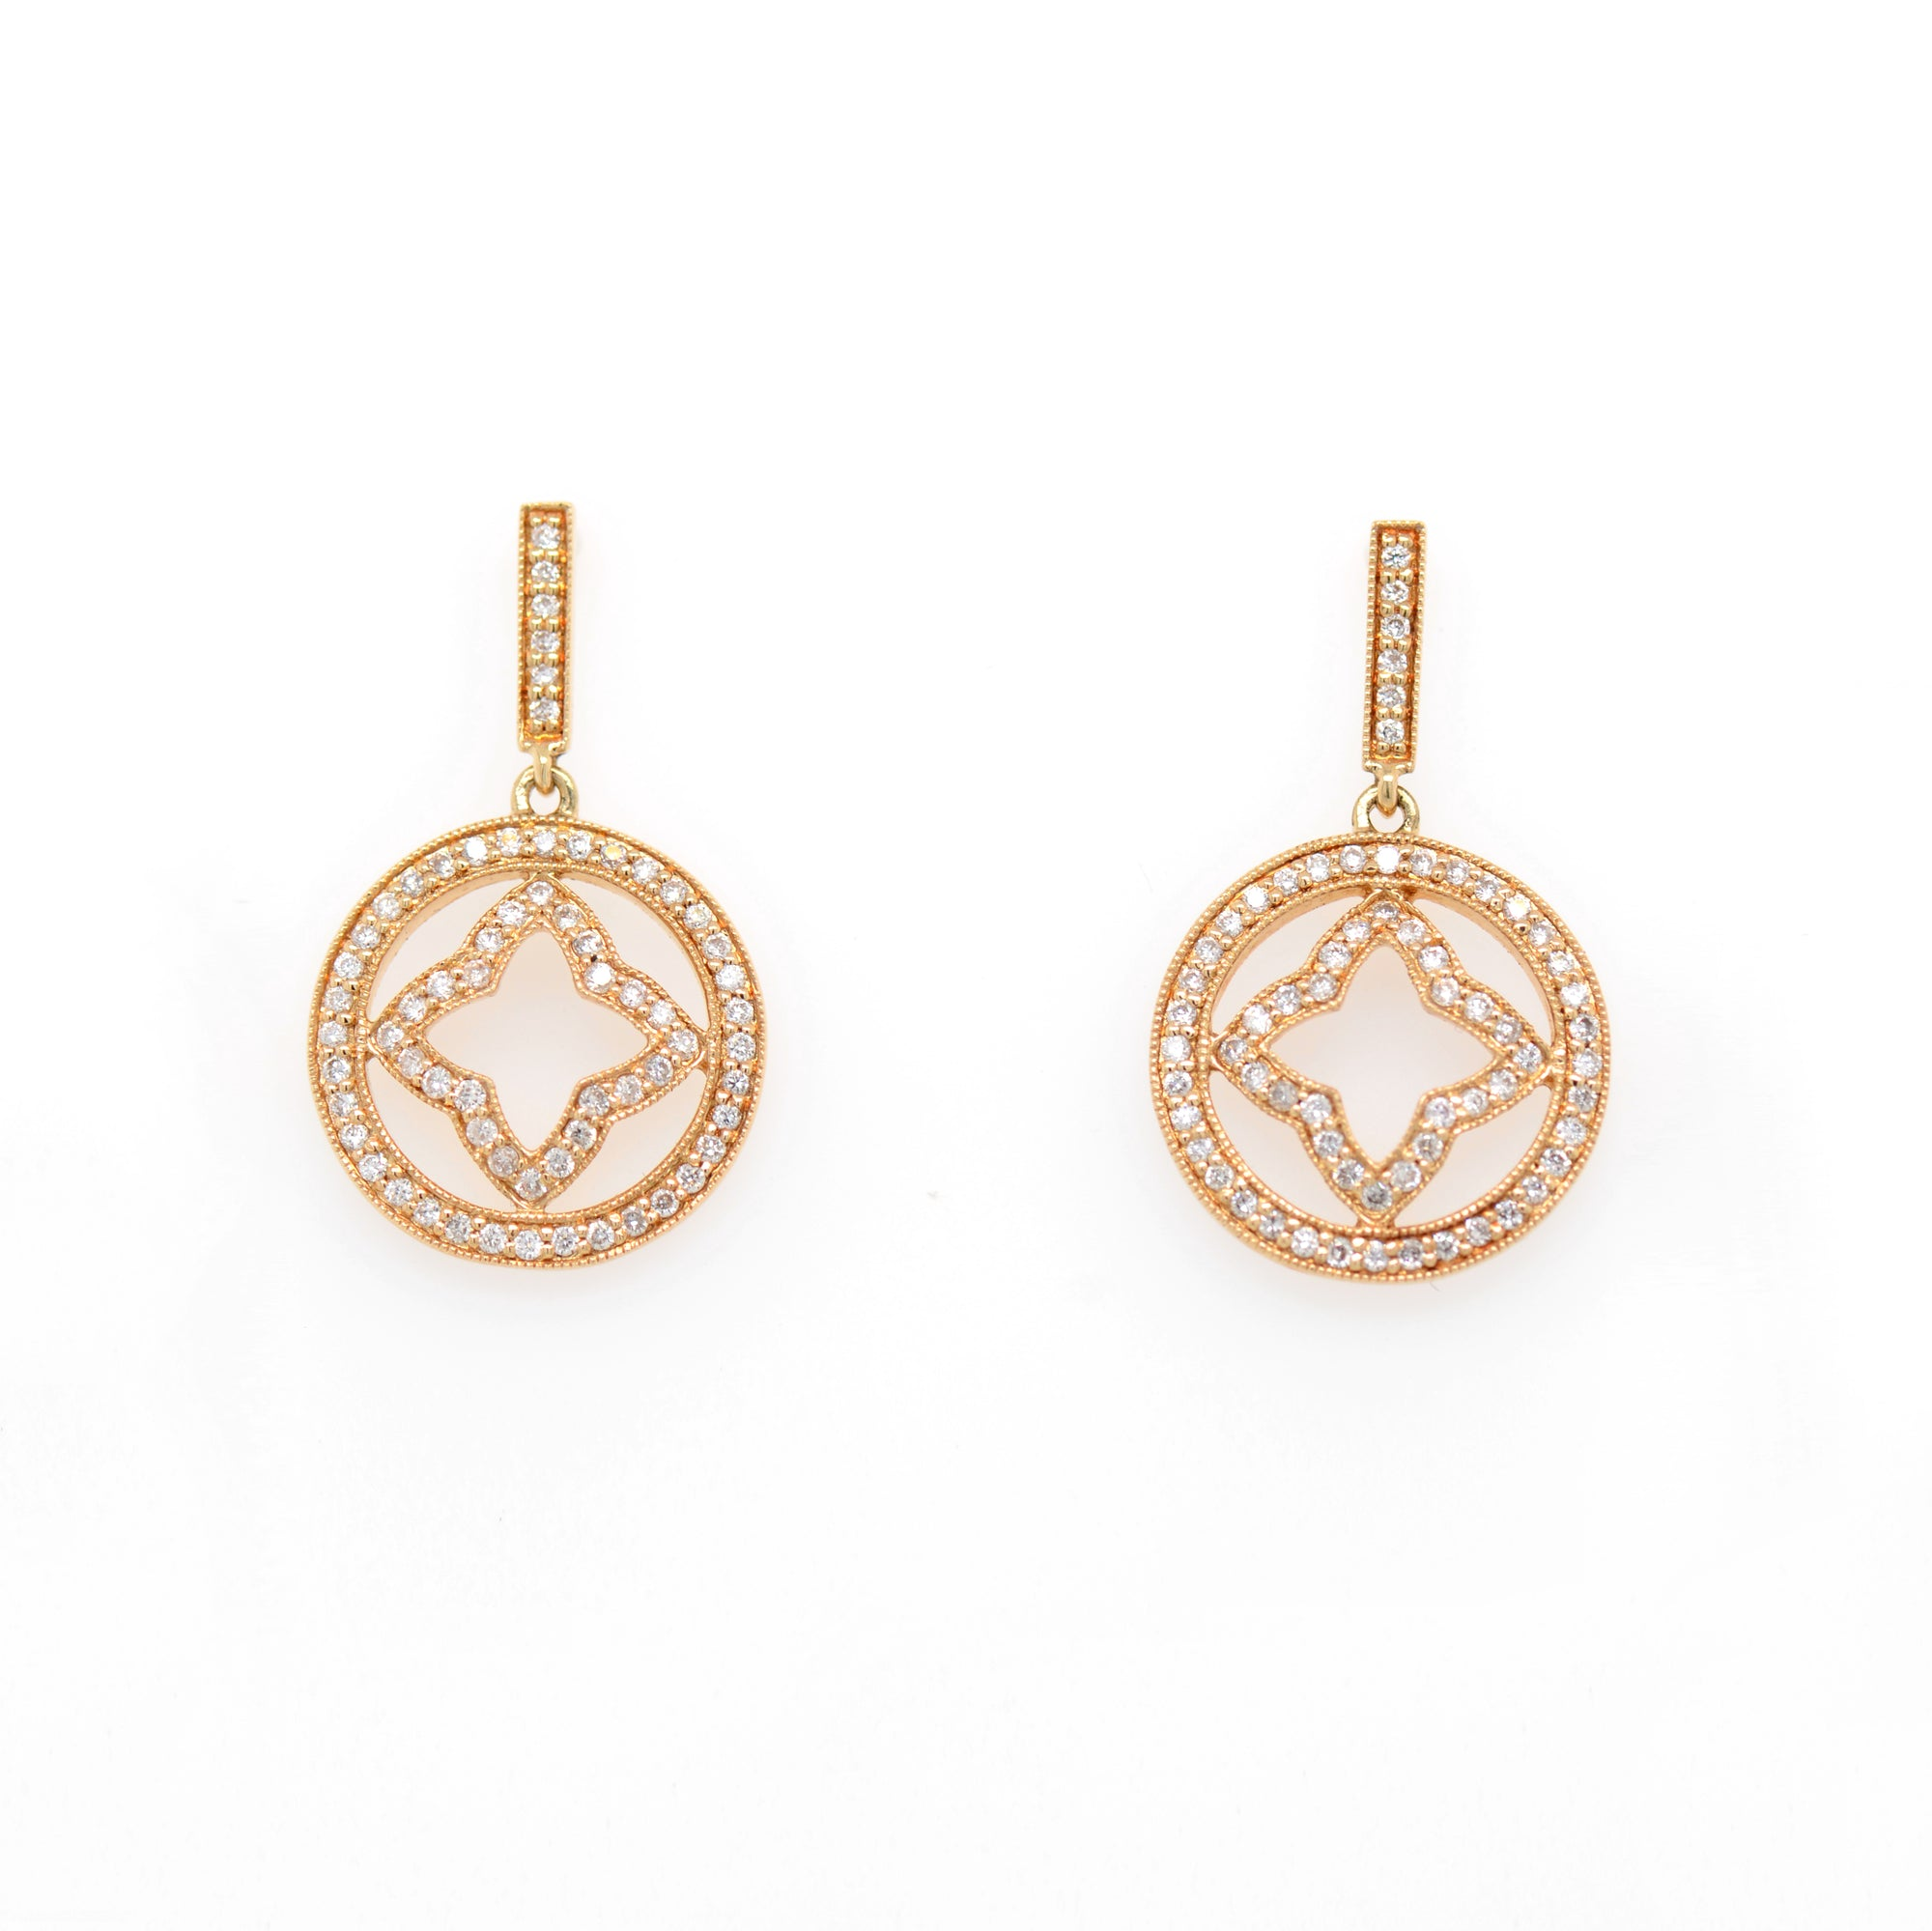 14K yellow gold diamond earrings featuring round diamonds weighing a total of 0.42 carats set in a clover-in-circle design with fine milgrain detail.